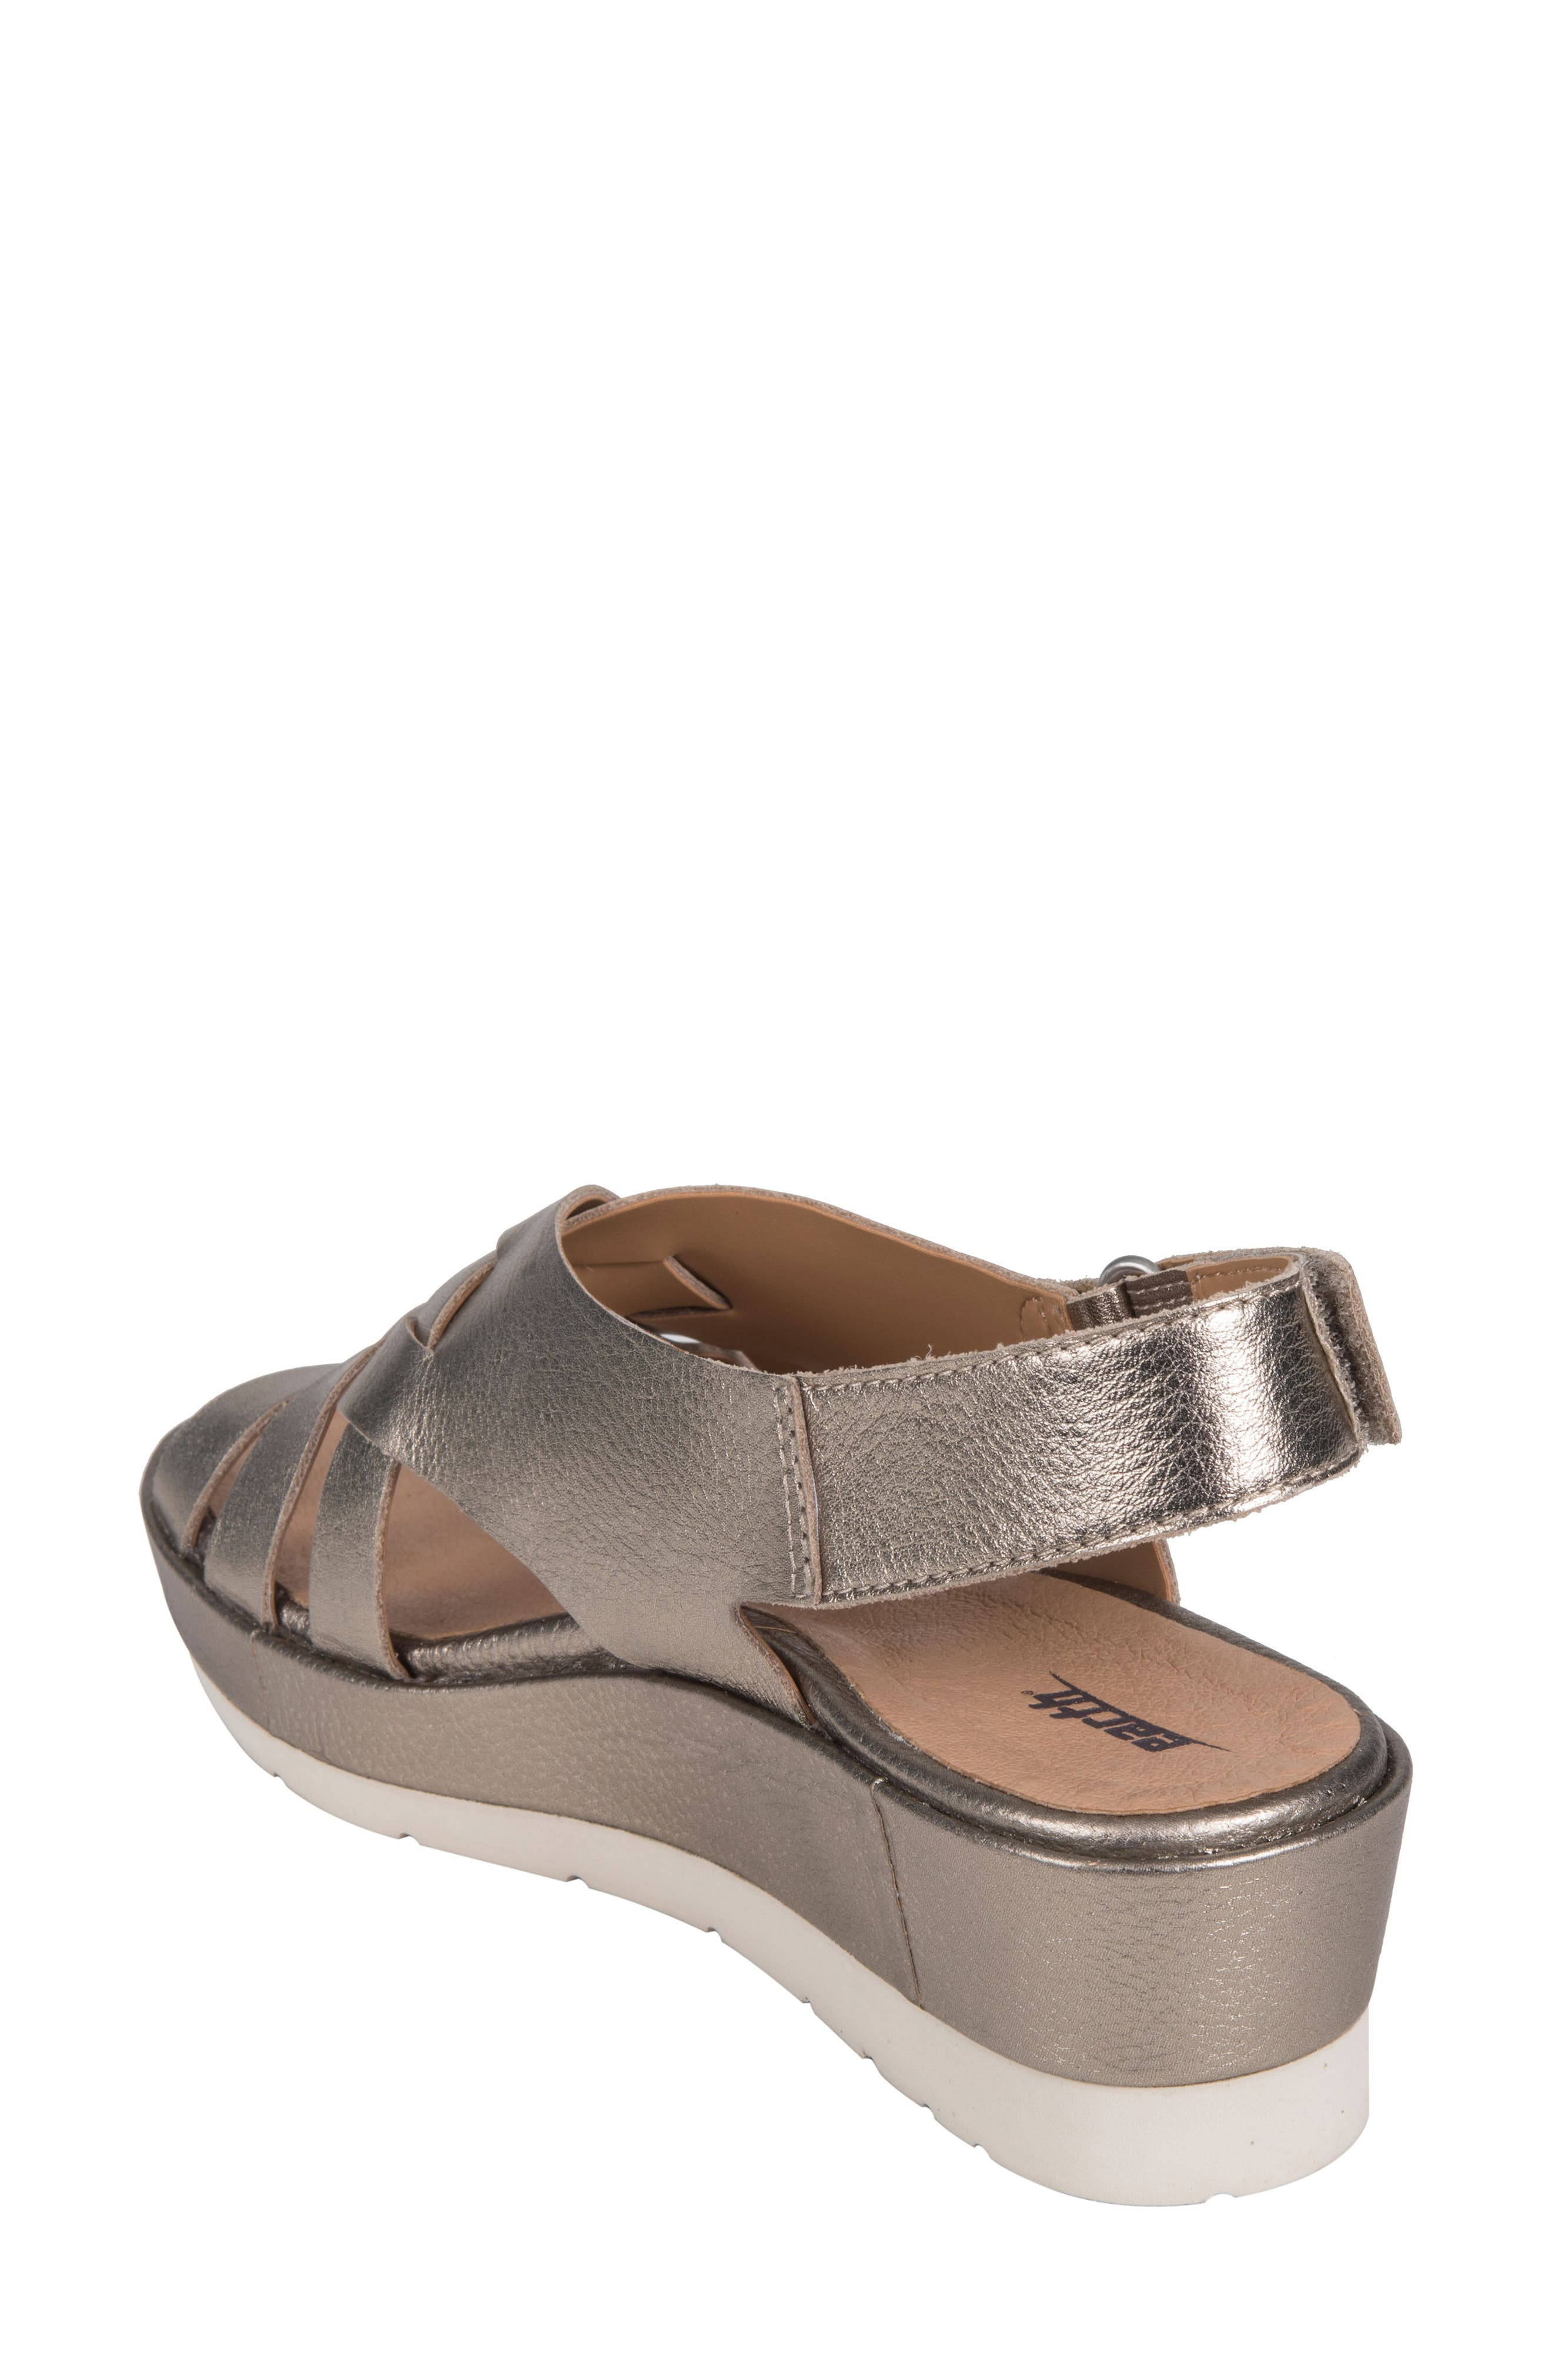 Sunflower Wedge Sandal,                             Alternate thumbnail 2, color,                             WASHED GOLD METALLIC LEATHER